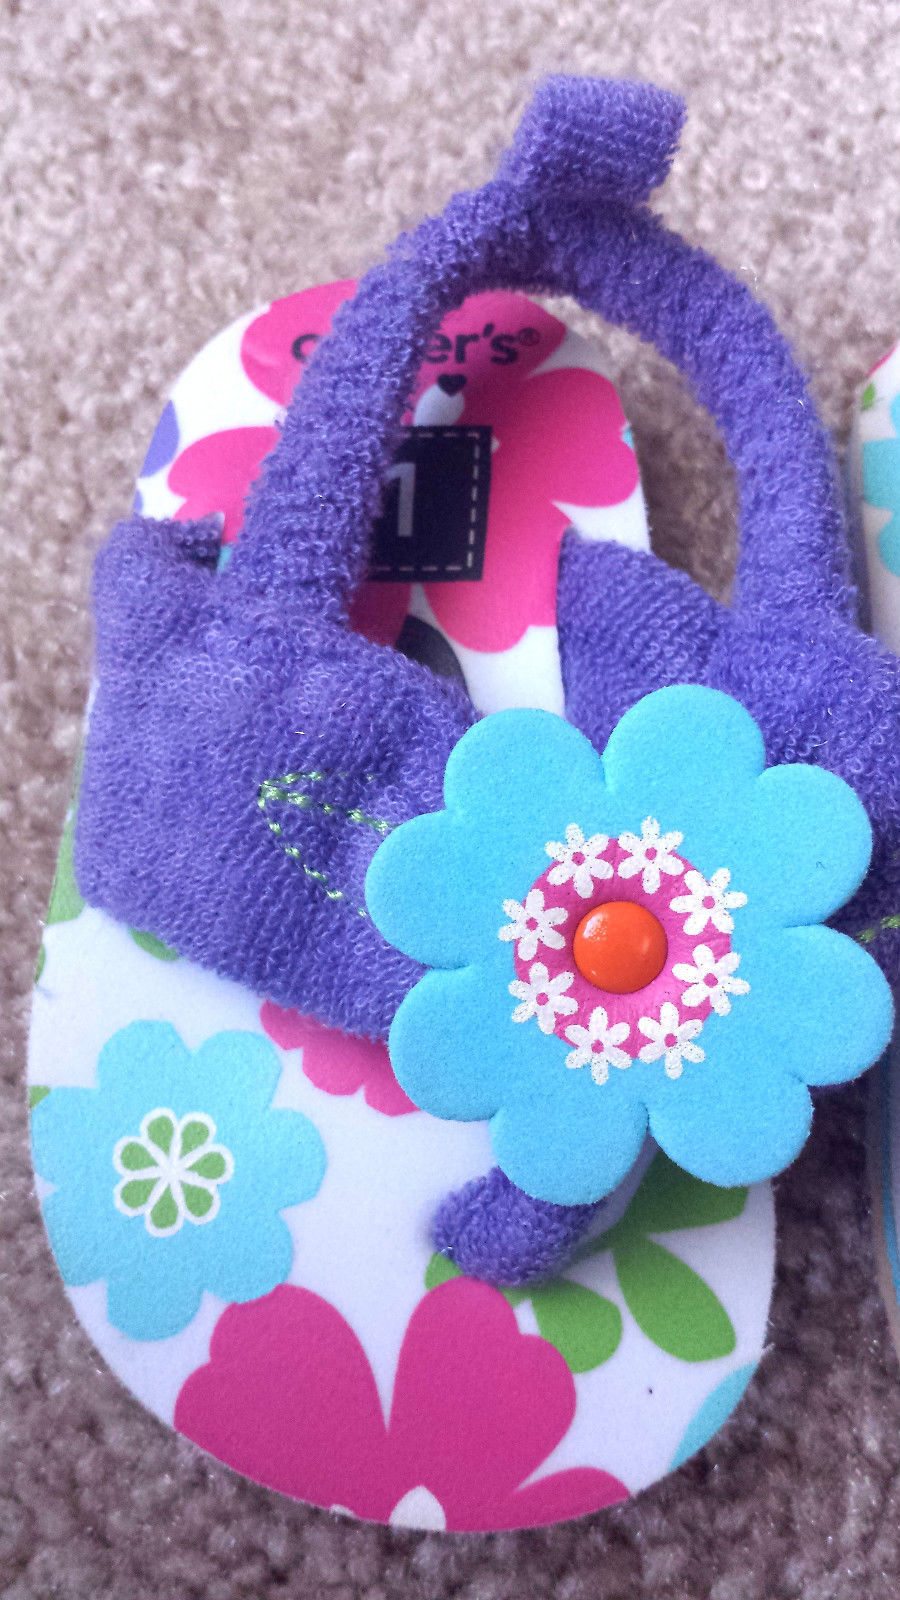 Baby Girl's Size 1 Carter's Purple Terry Floral Designed Flip Flops Shoes Straps